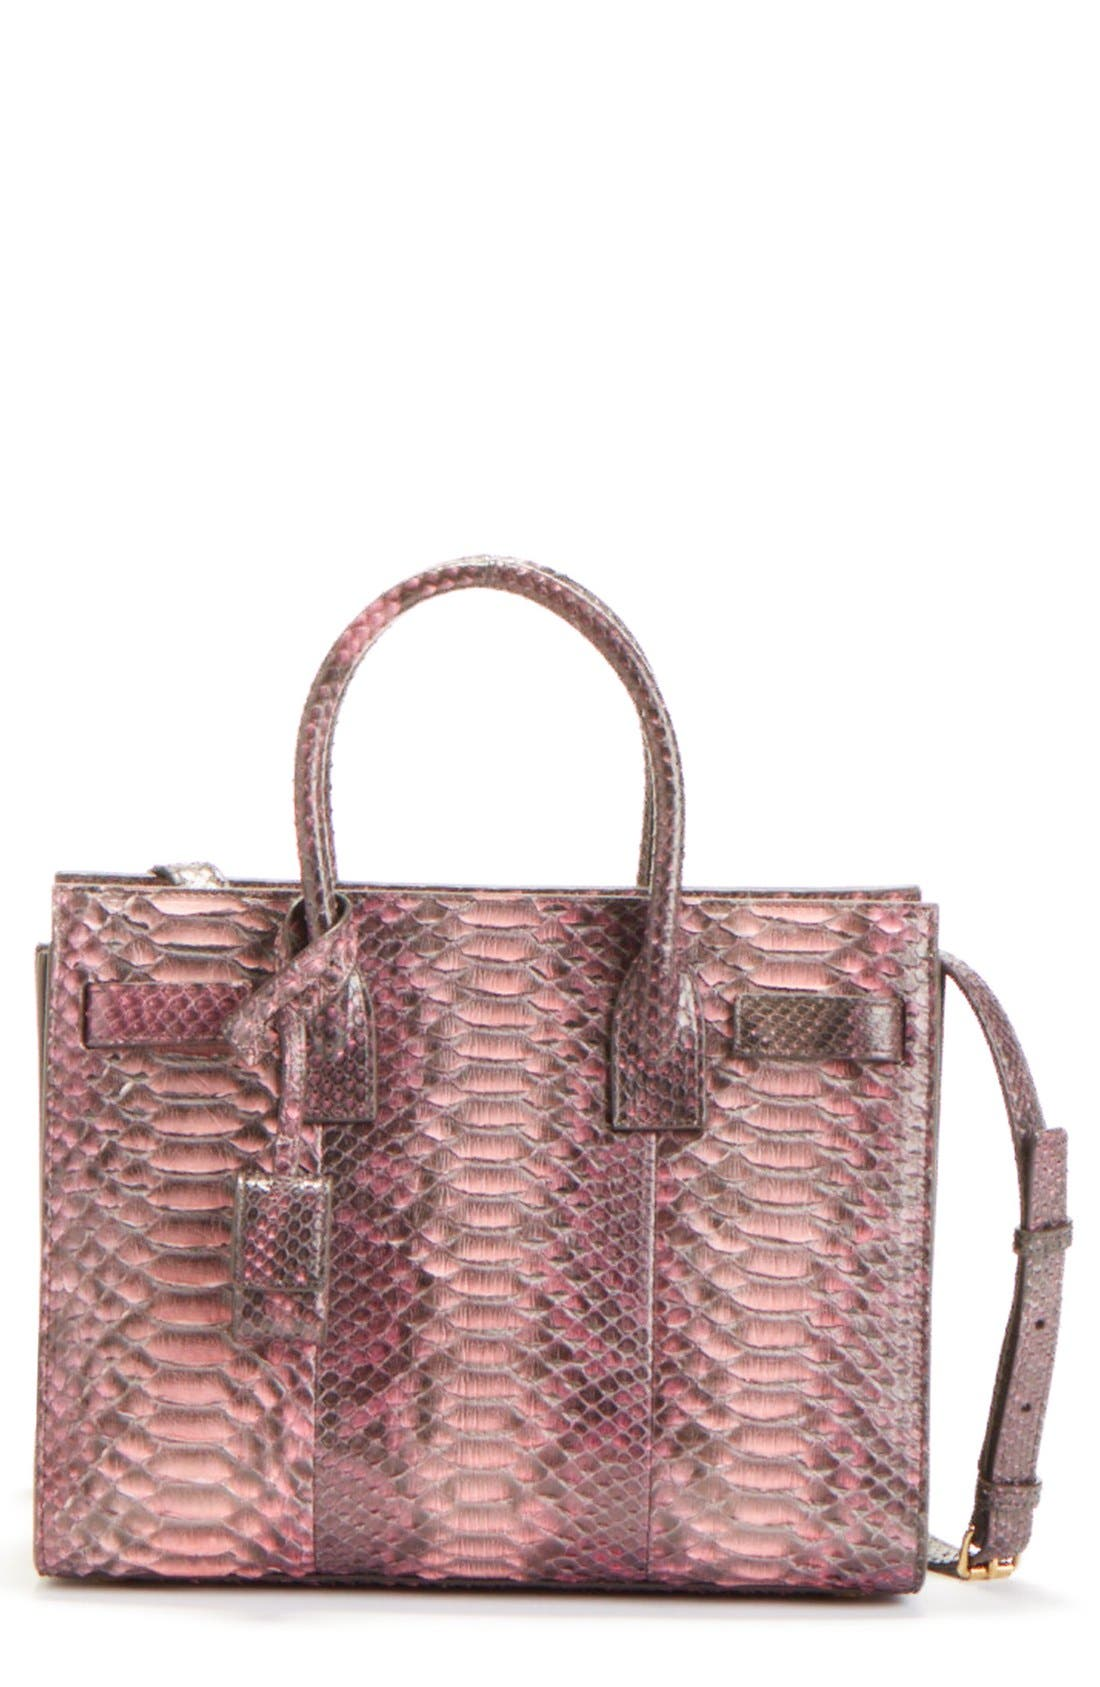 'Baby Sac de Jour' Genuine Python Tote,                         Main,                         color, Rose/Brown/Grey